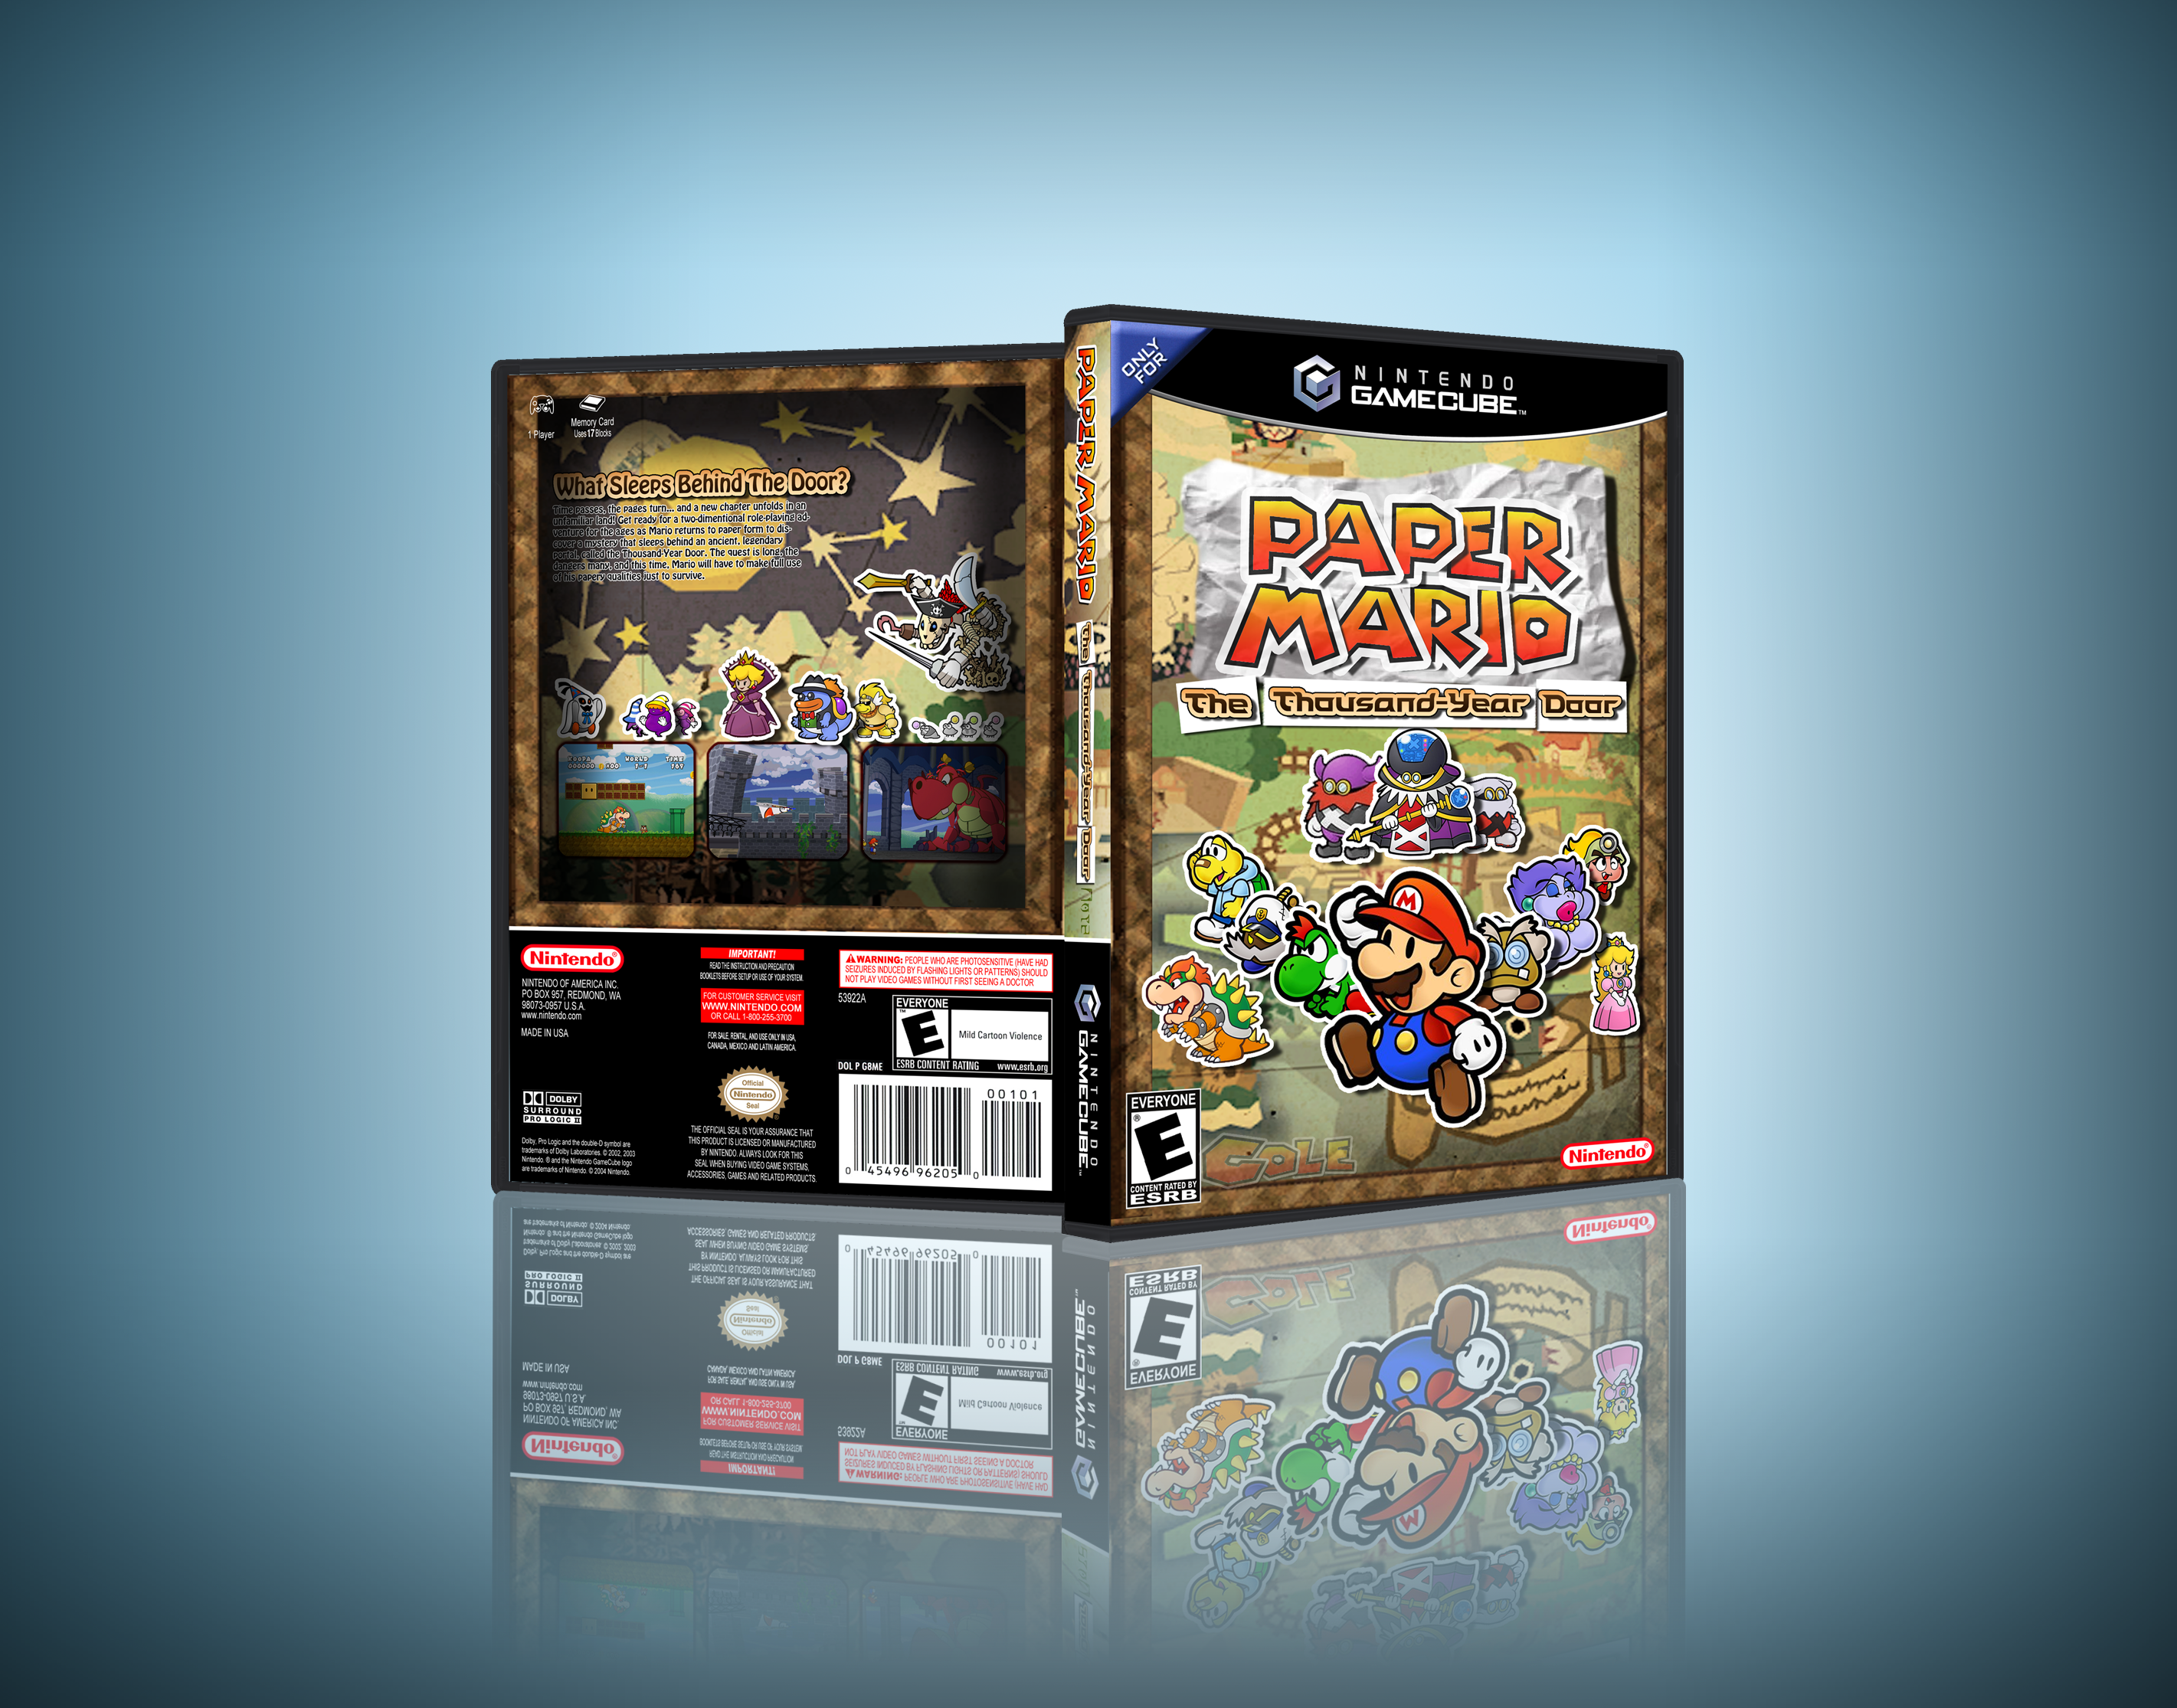 Paper Mario: The Thousand Year Door box cover